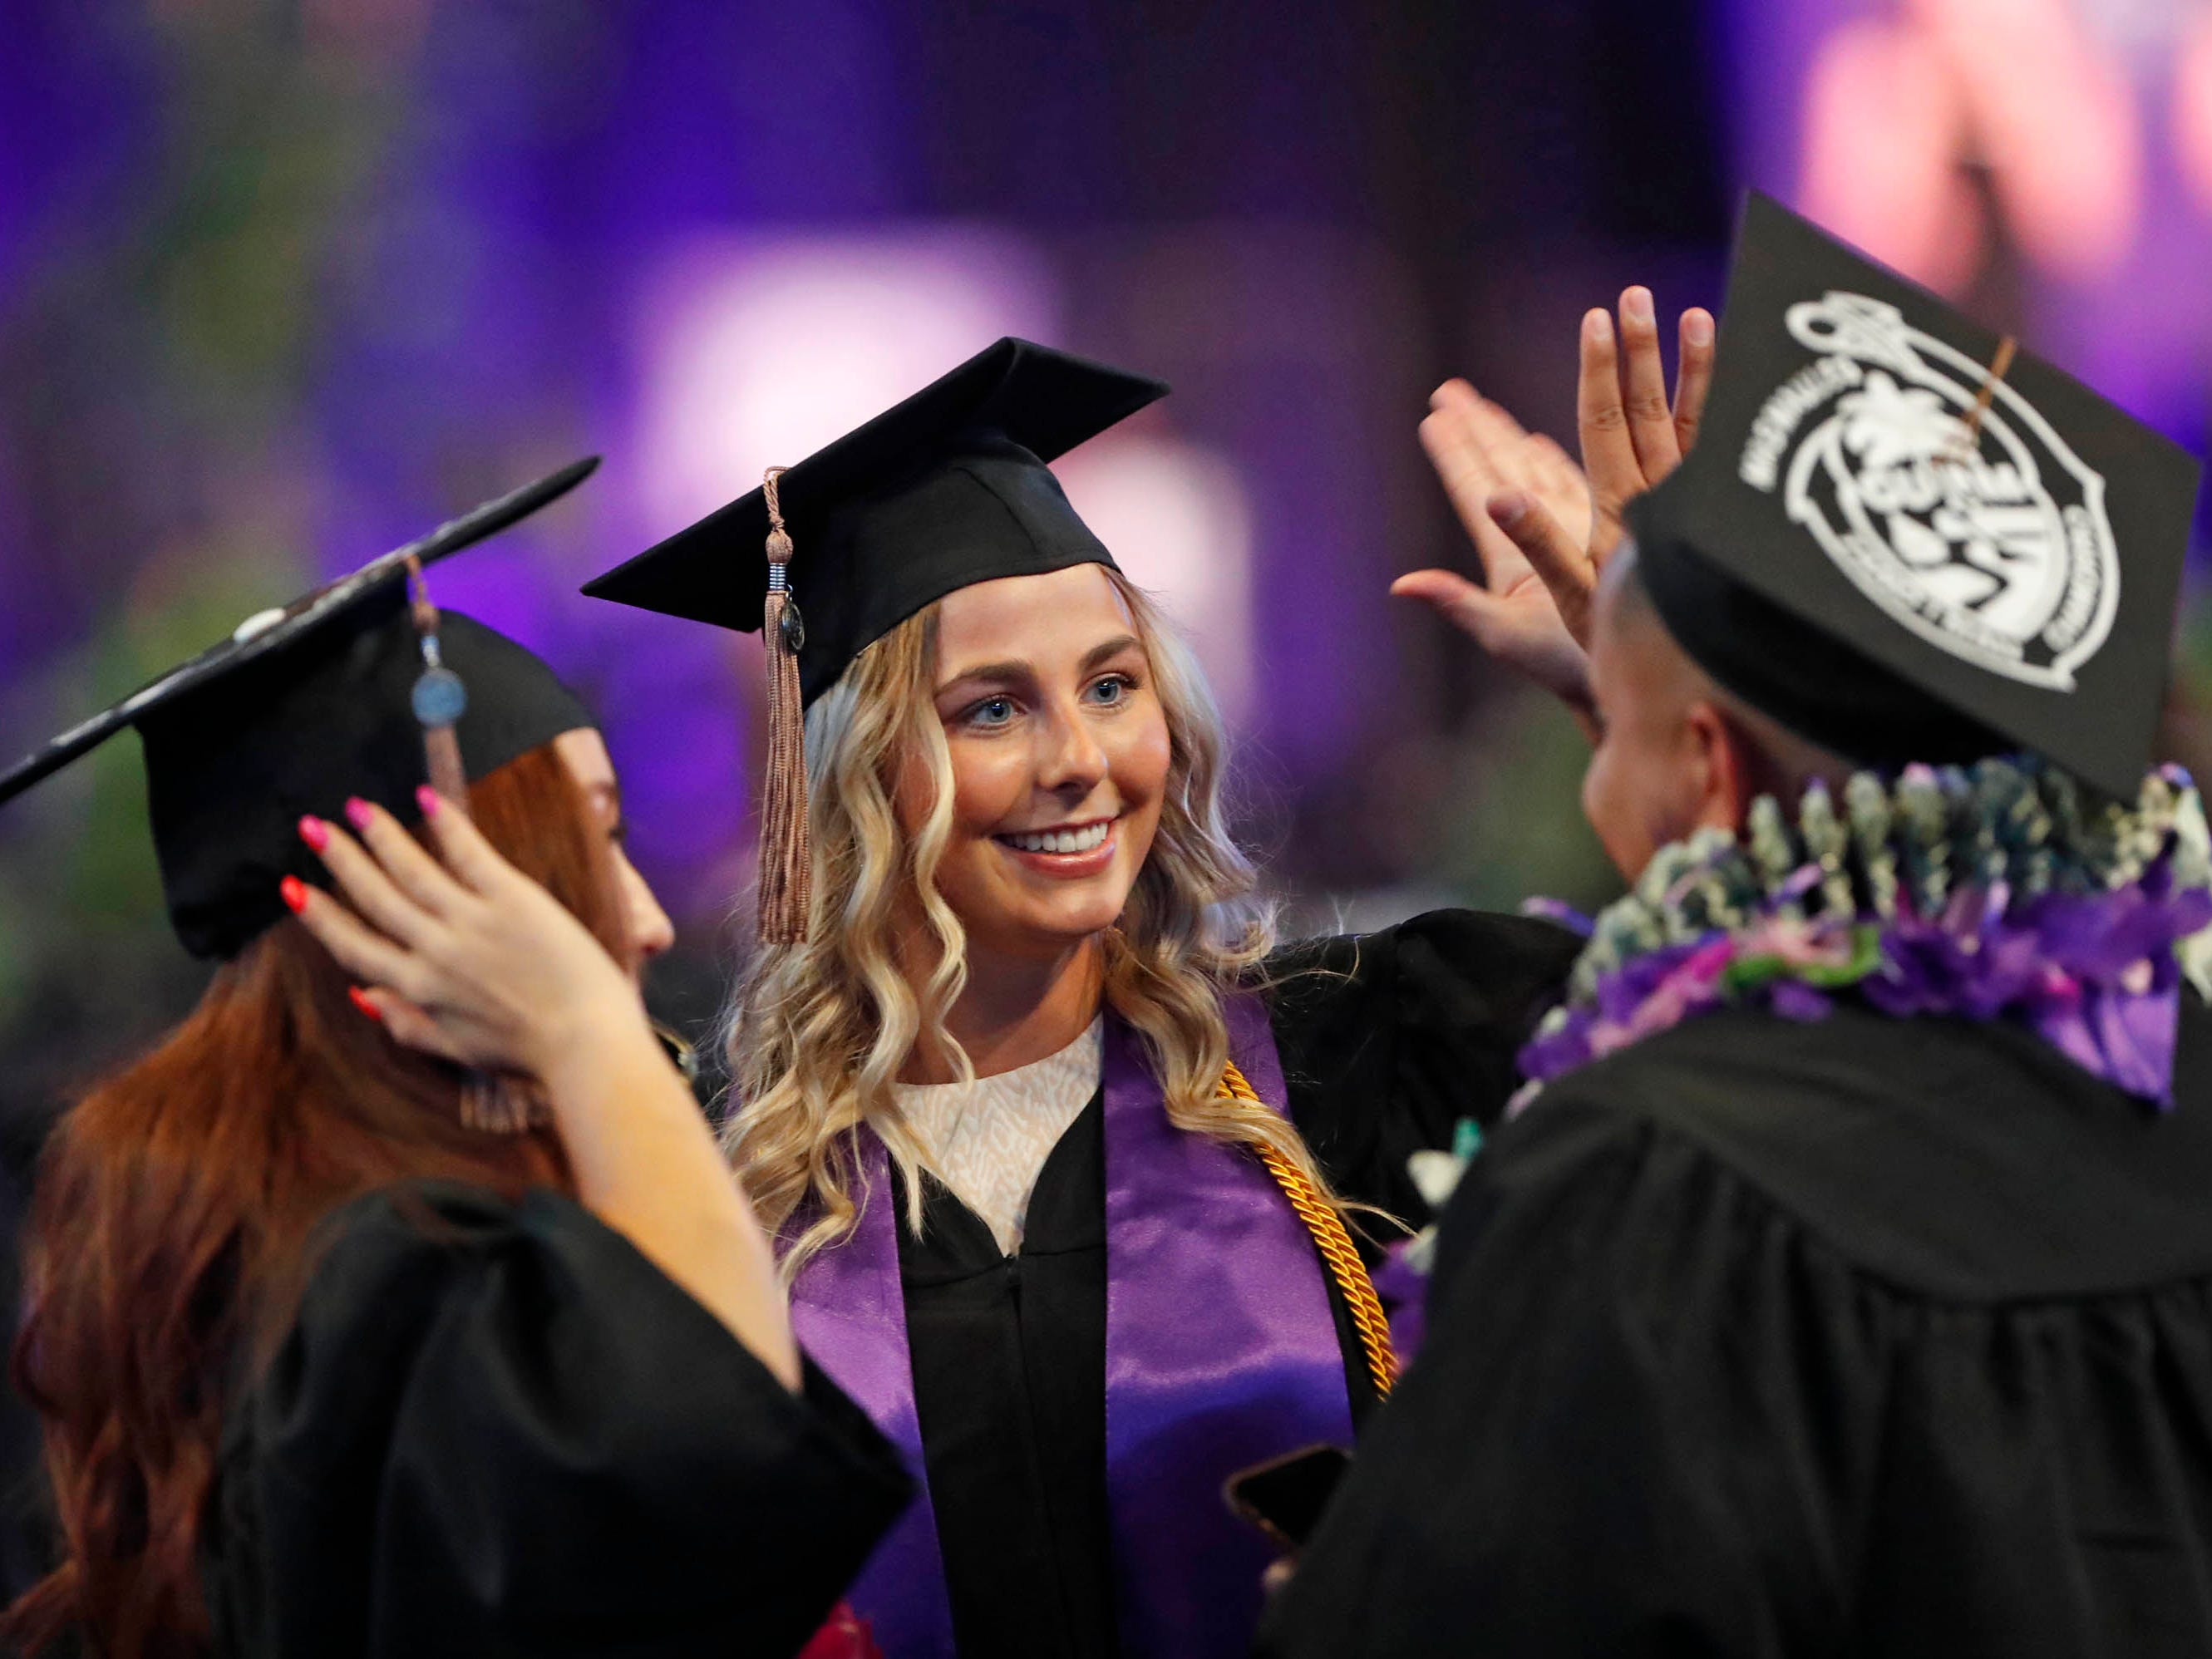 Grand Canyon University graduates celebrate during their commencement ceremony. The university will give out more than 25,000 degrees to the class of 2019, the largest in its history.